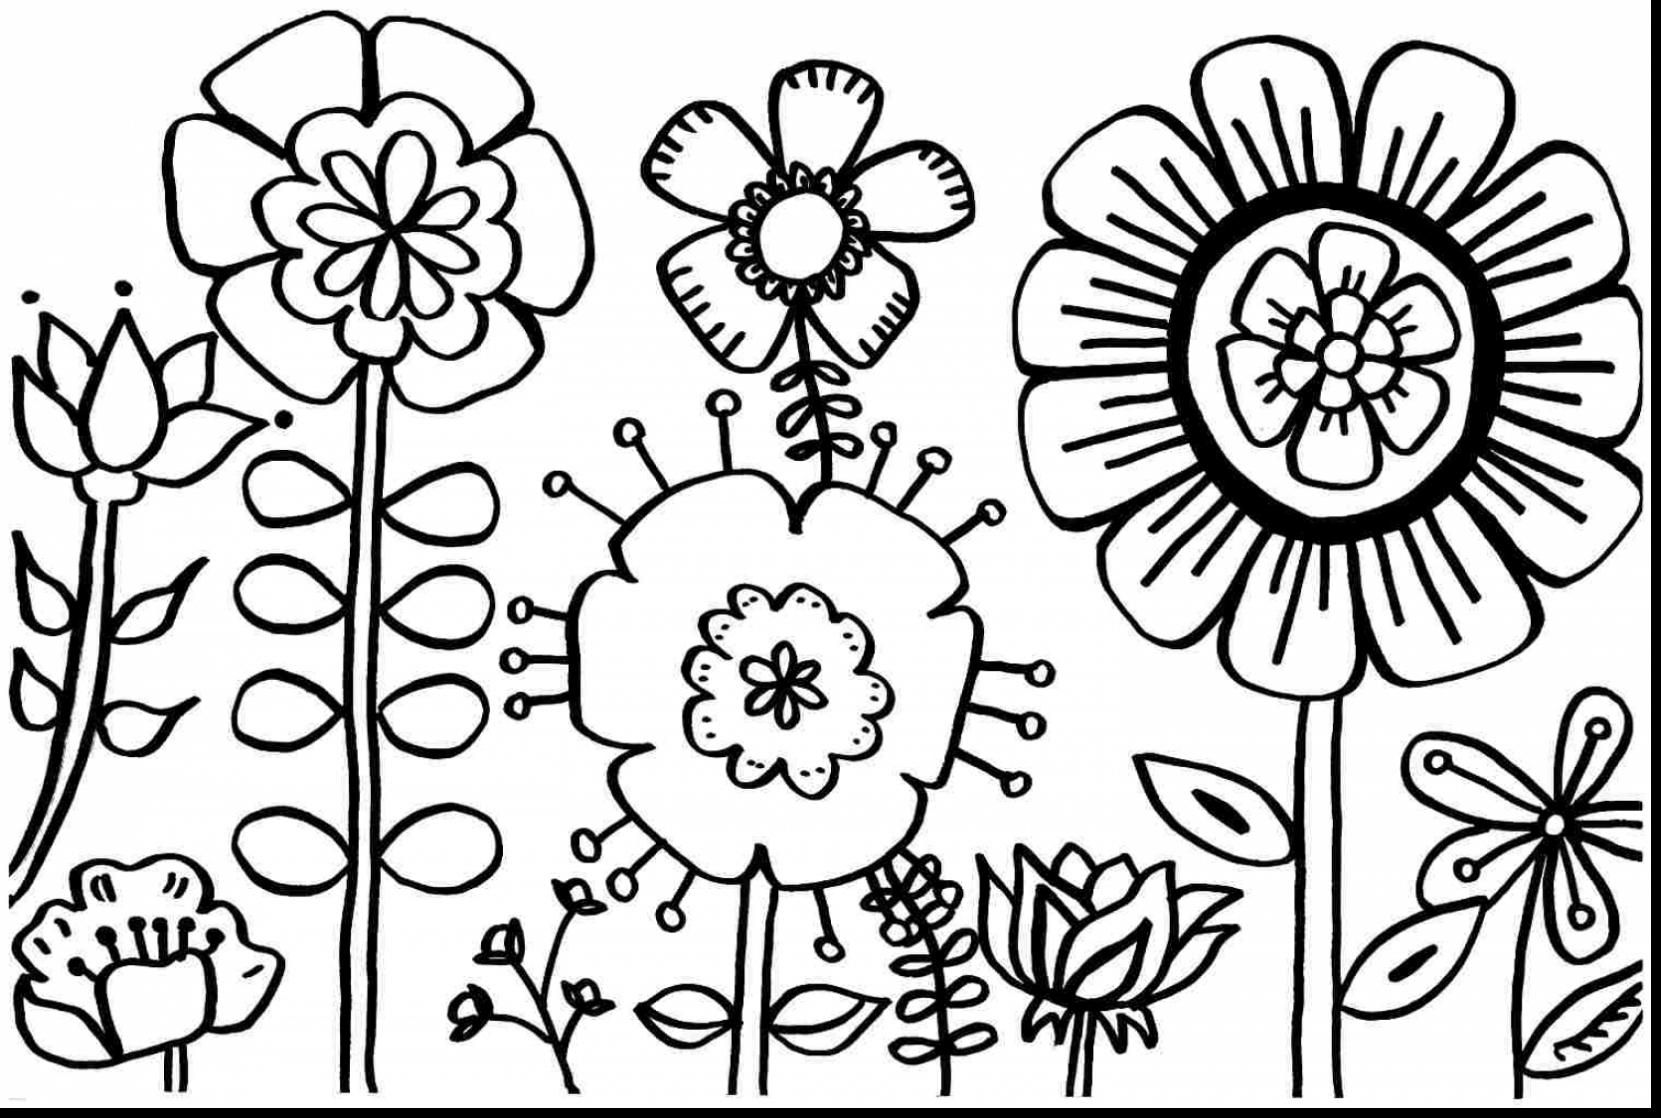 superb spring flower coloring pages printable with spring coloring pages and spring coloring pages to print